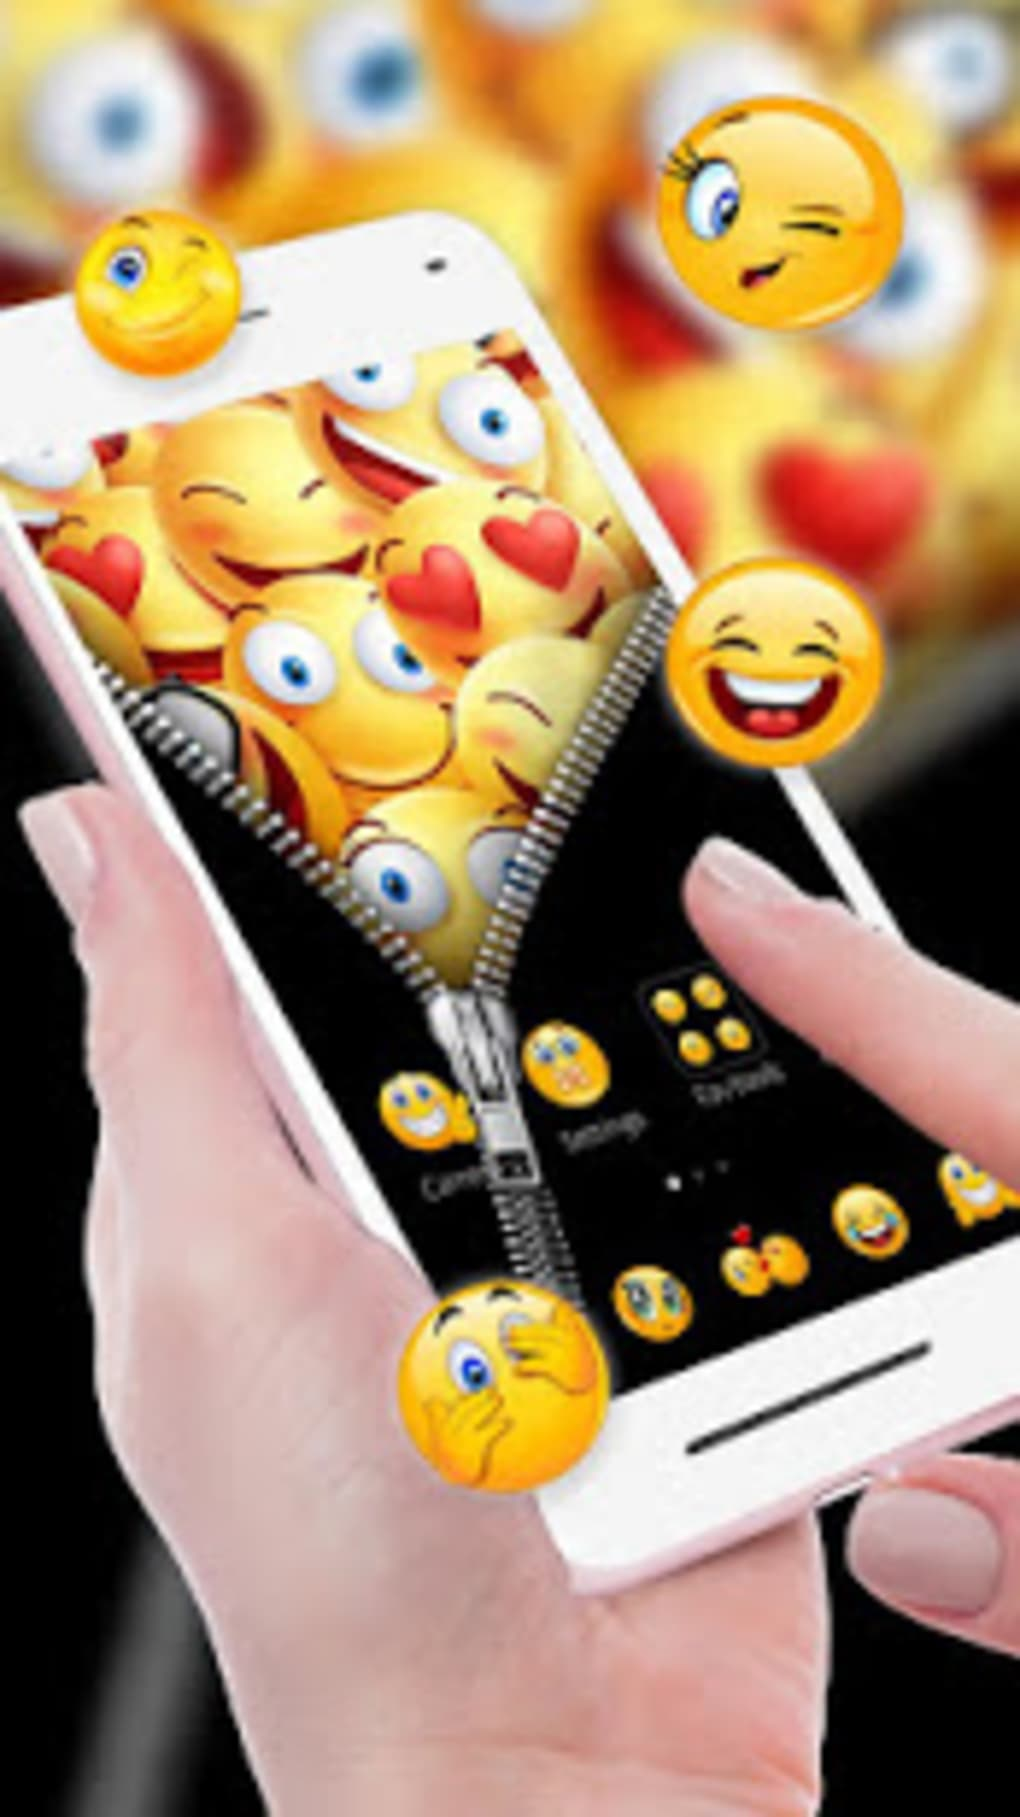 Unduh 860+ Wallpaper Emoticon 3d HD Paling Keren